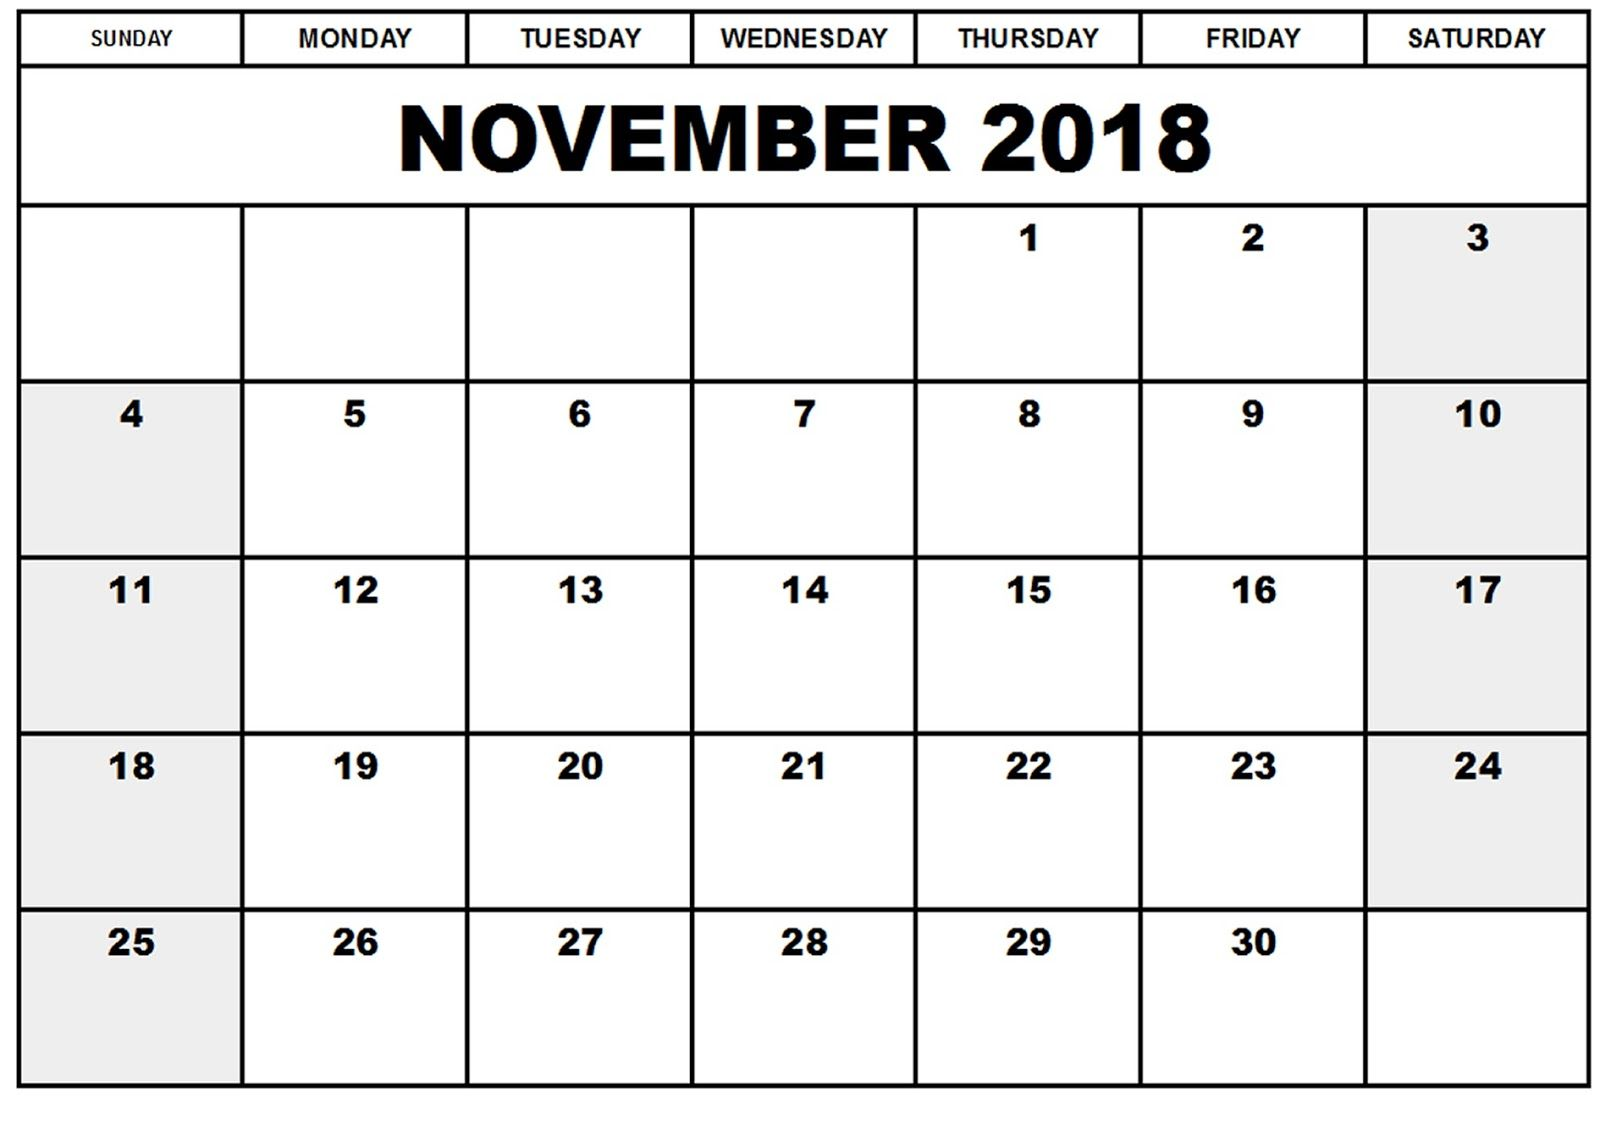 November 2018 Printable Calendar Templates August Calendar Blank Calendar Template Monthly Calendar Template